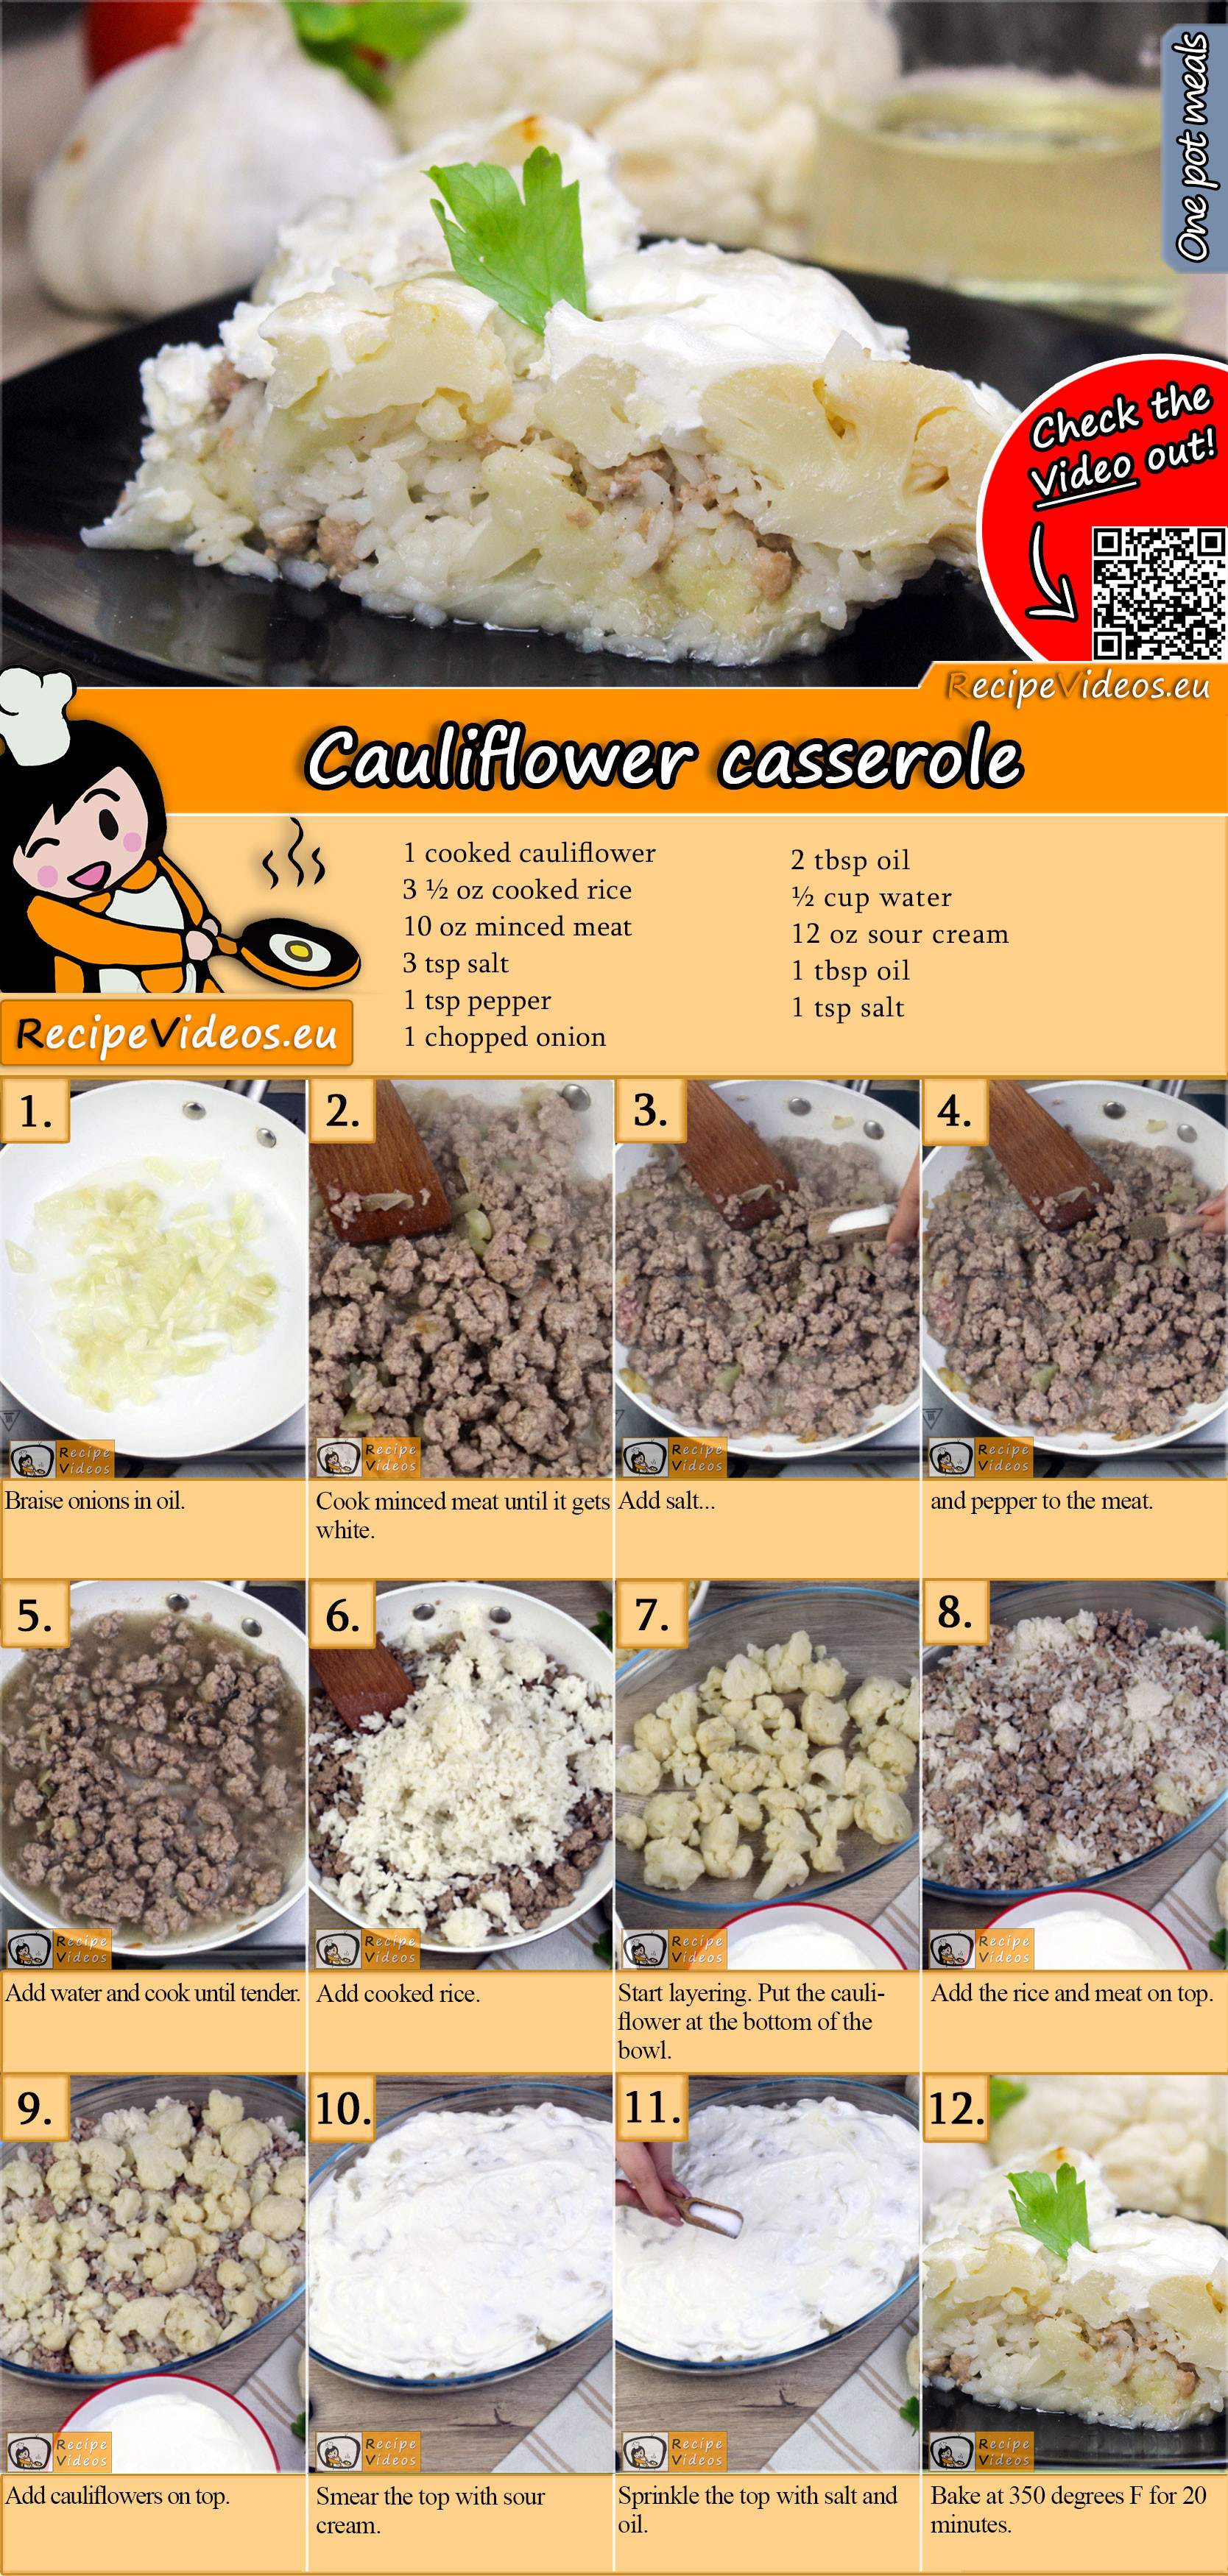 Cauliflower casserole recipe with video